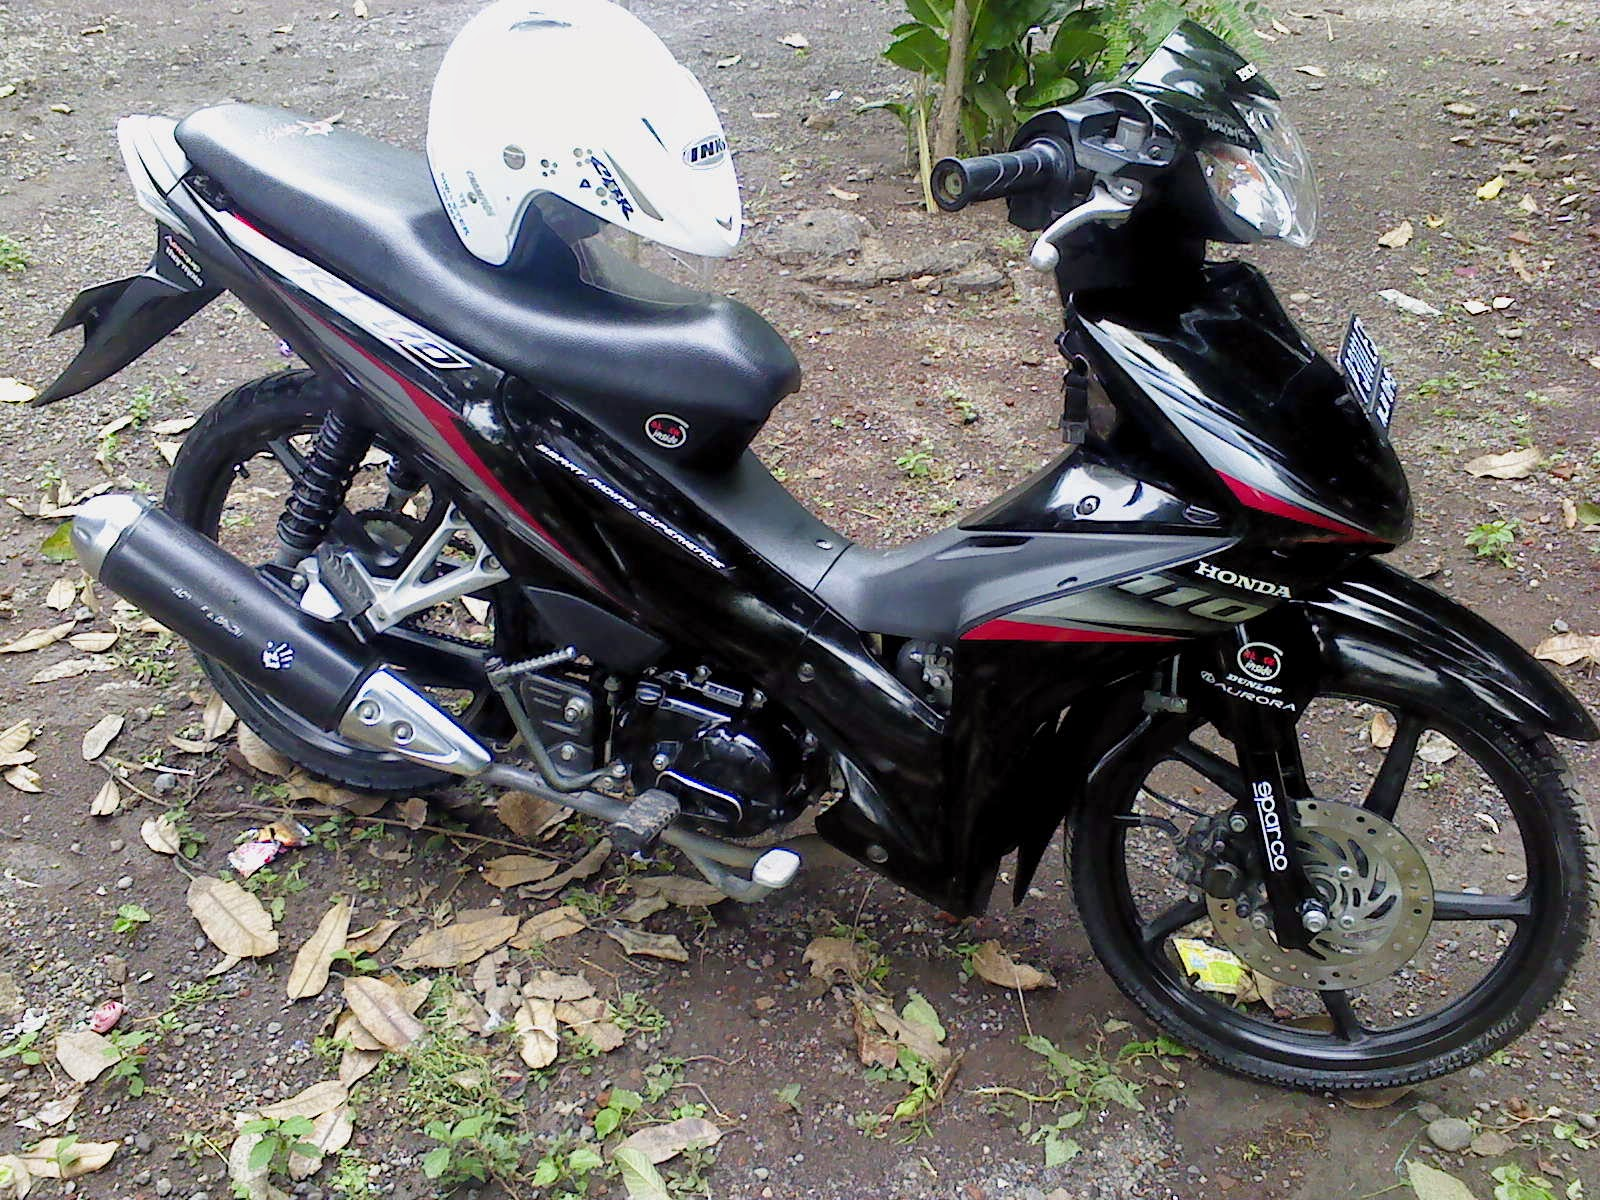 modifikasi motor revo fit terkeren